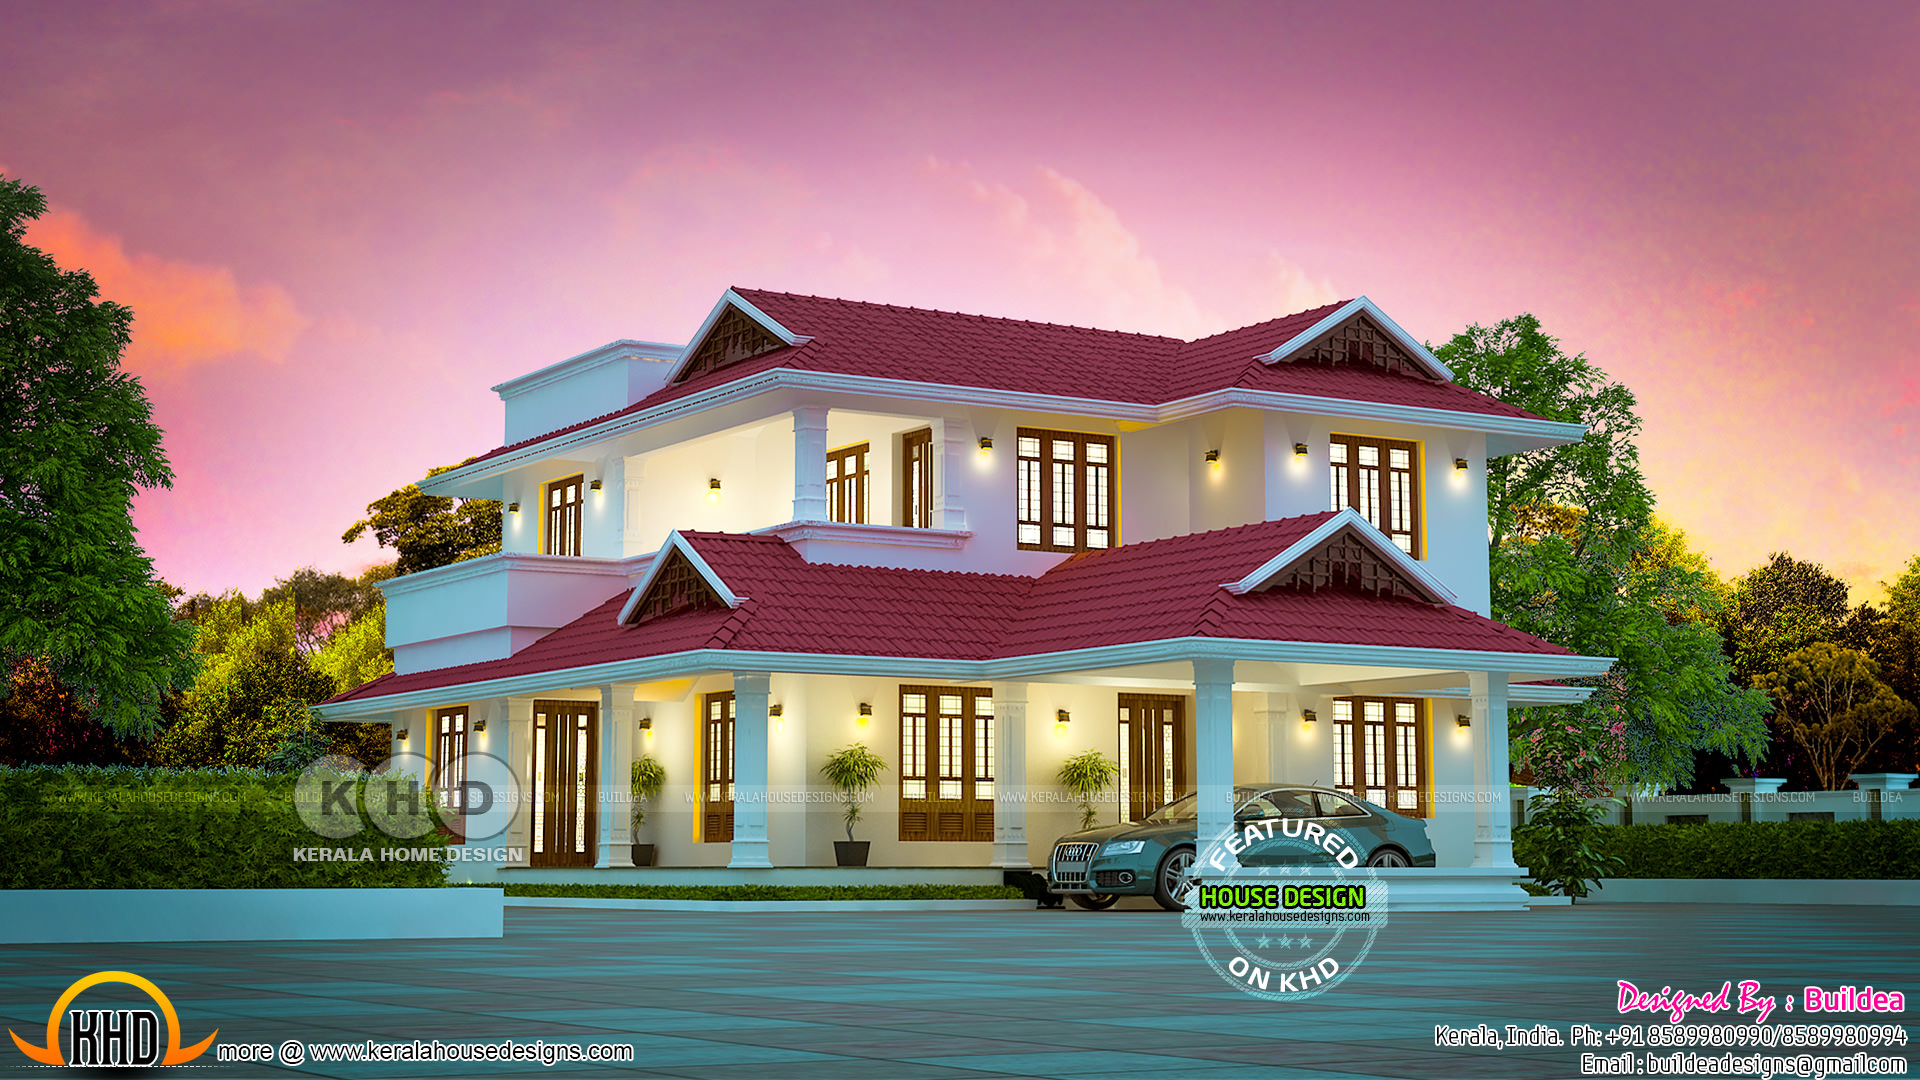 Beautiful Kerala house design 2130 square feet - Kerala home ... on kerala luxury house plans, small house plans, kerala house design plans, minimalist home floor plans, kerala home, houses and floor plans, house layout plans, narrow lot house plans, kerala beach house plans, modern two-story house plans, ranch modular home floor plans, maisonette house plans, 2 story modular house plans, affordable 2 bedroom house plans, house beautiful house plans, blueprints for house foundation plans, new design house plans, kerala house plans 1500 square feet, kerala 3 bedroom house plans,